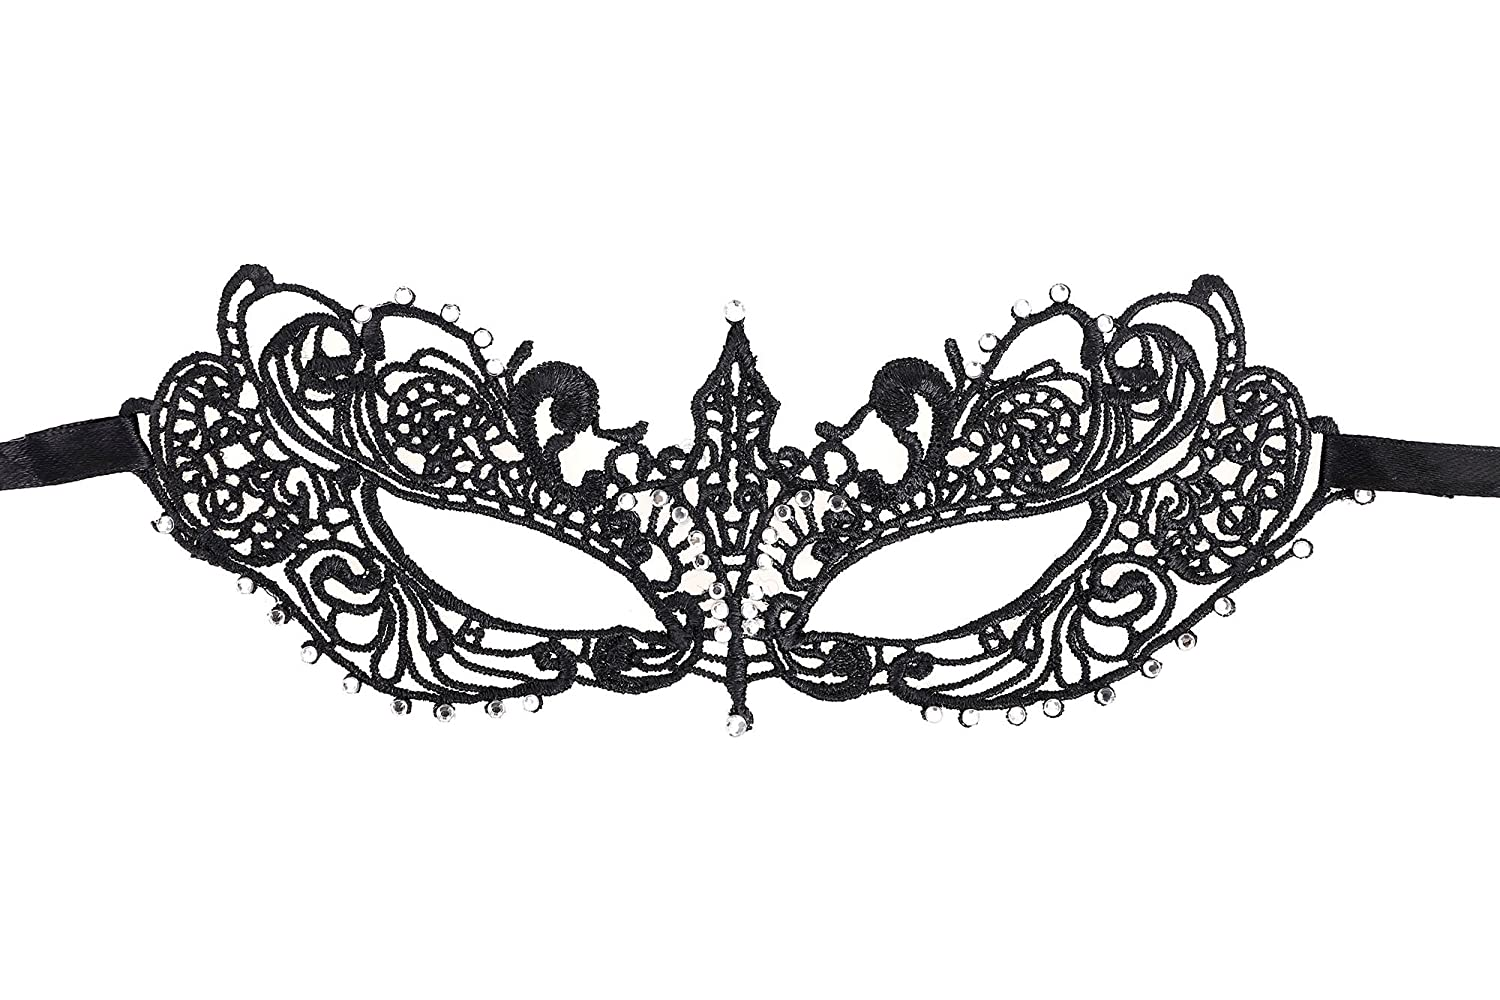 AshopZ Women's Classic Goddess Venetian Masquerade Lace Eye Mask Black